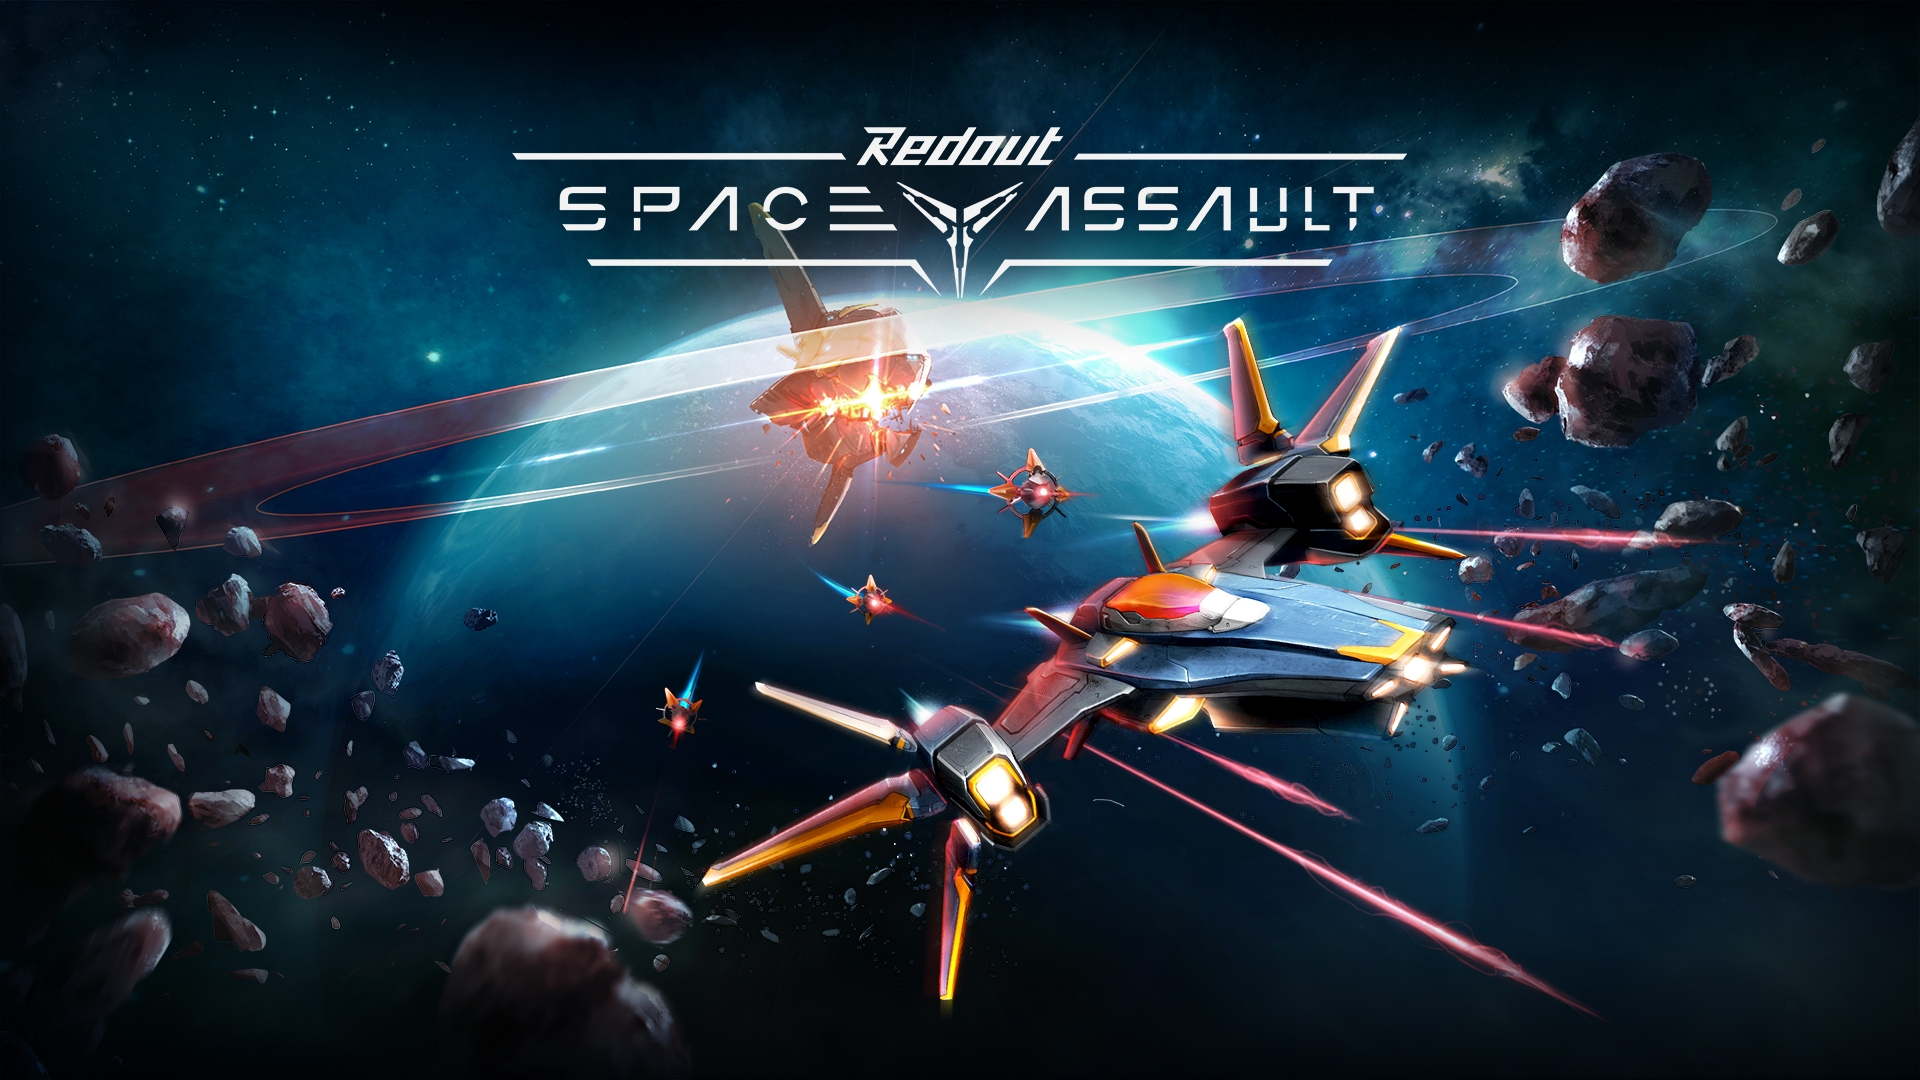 Download Redout Space Assault v1.0.2.1-GOG in PC [ Torrent ]